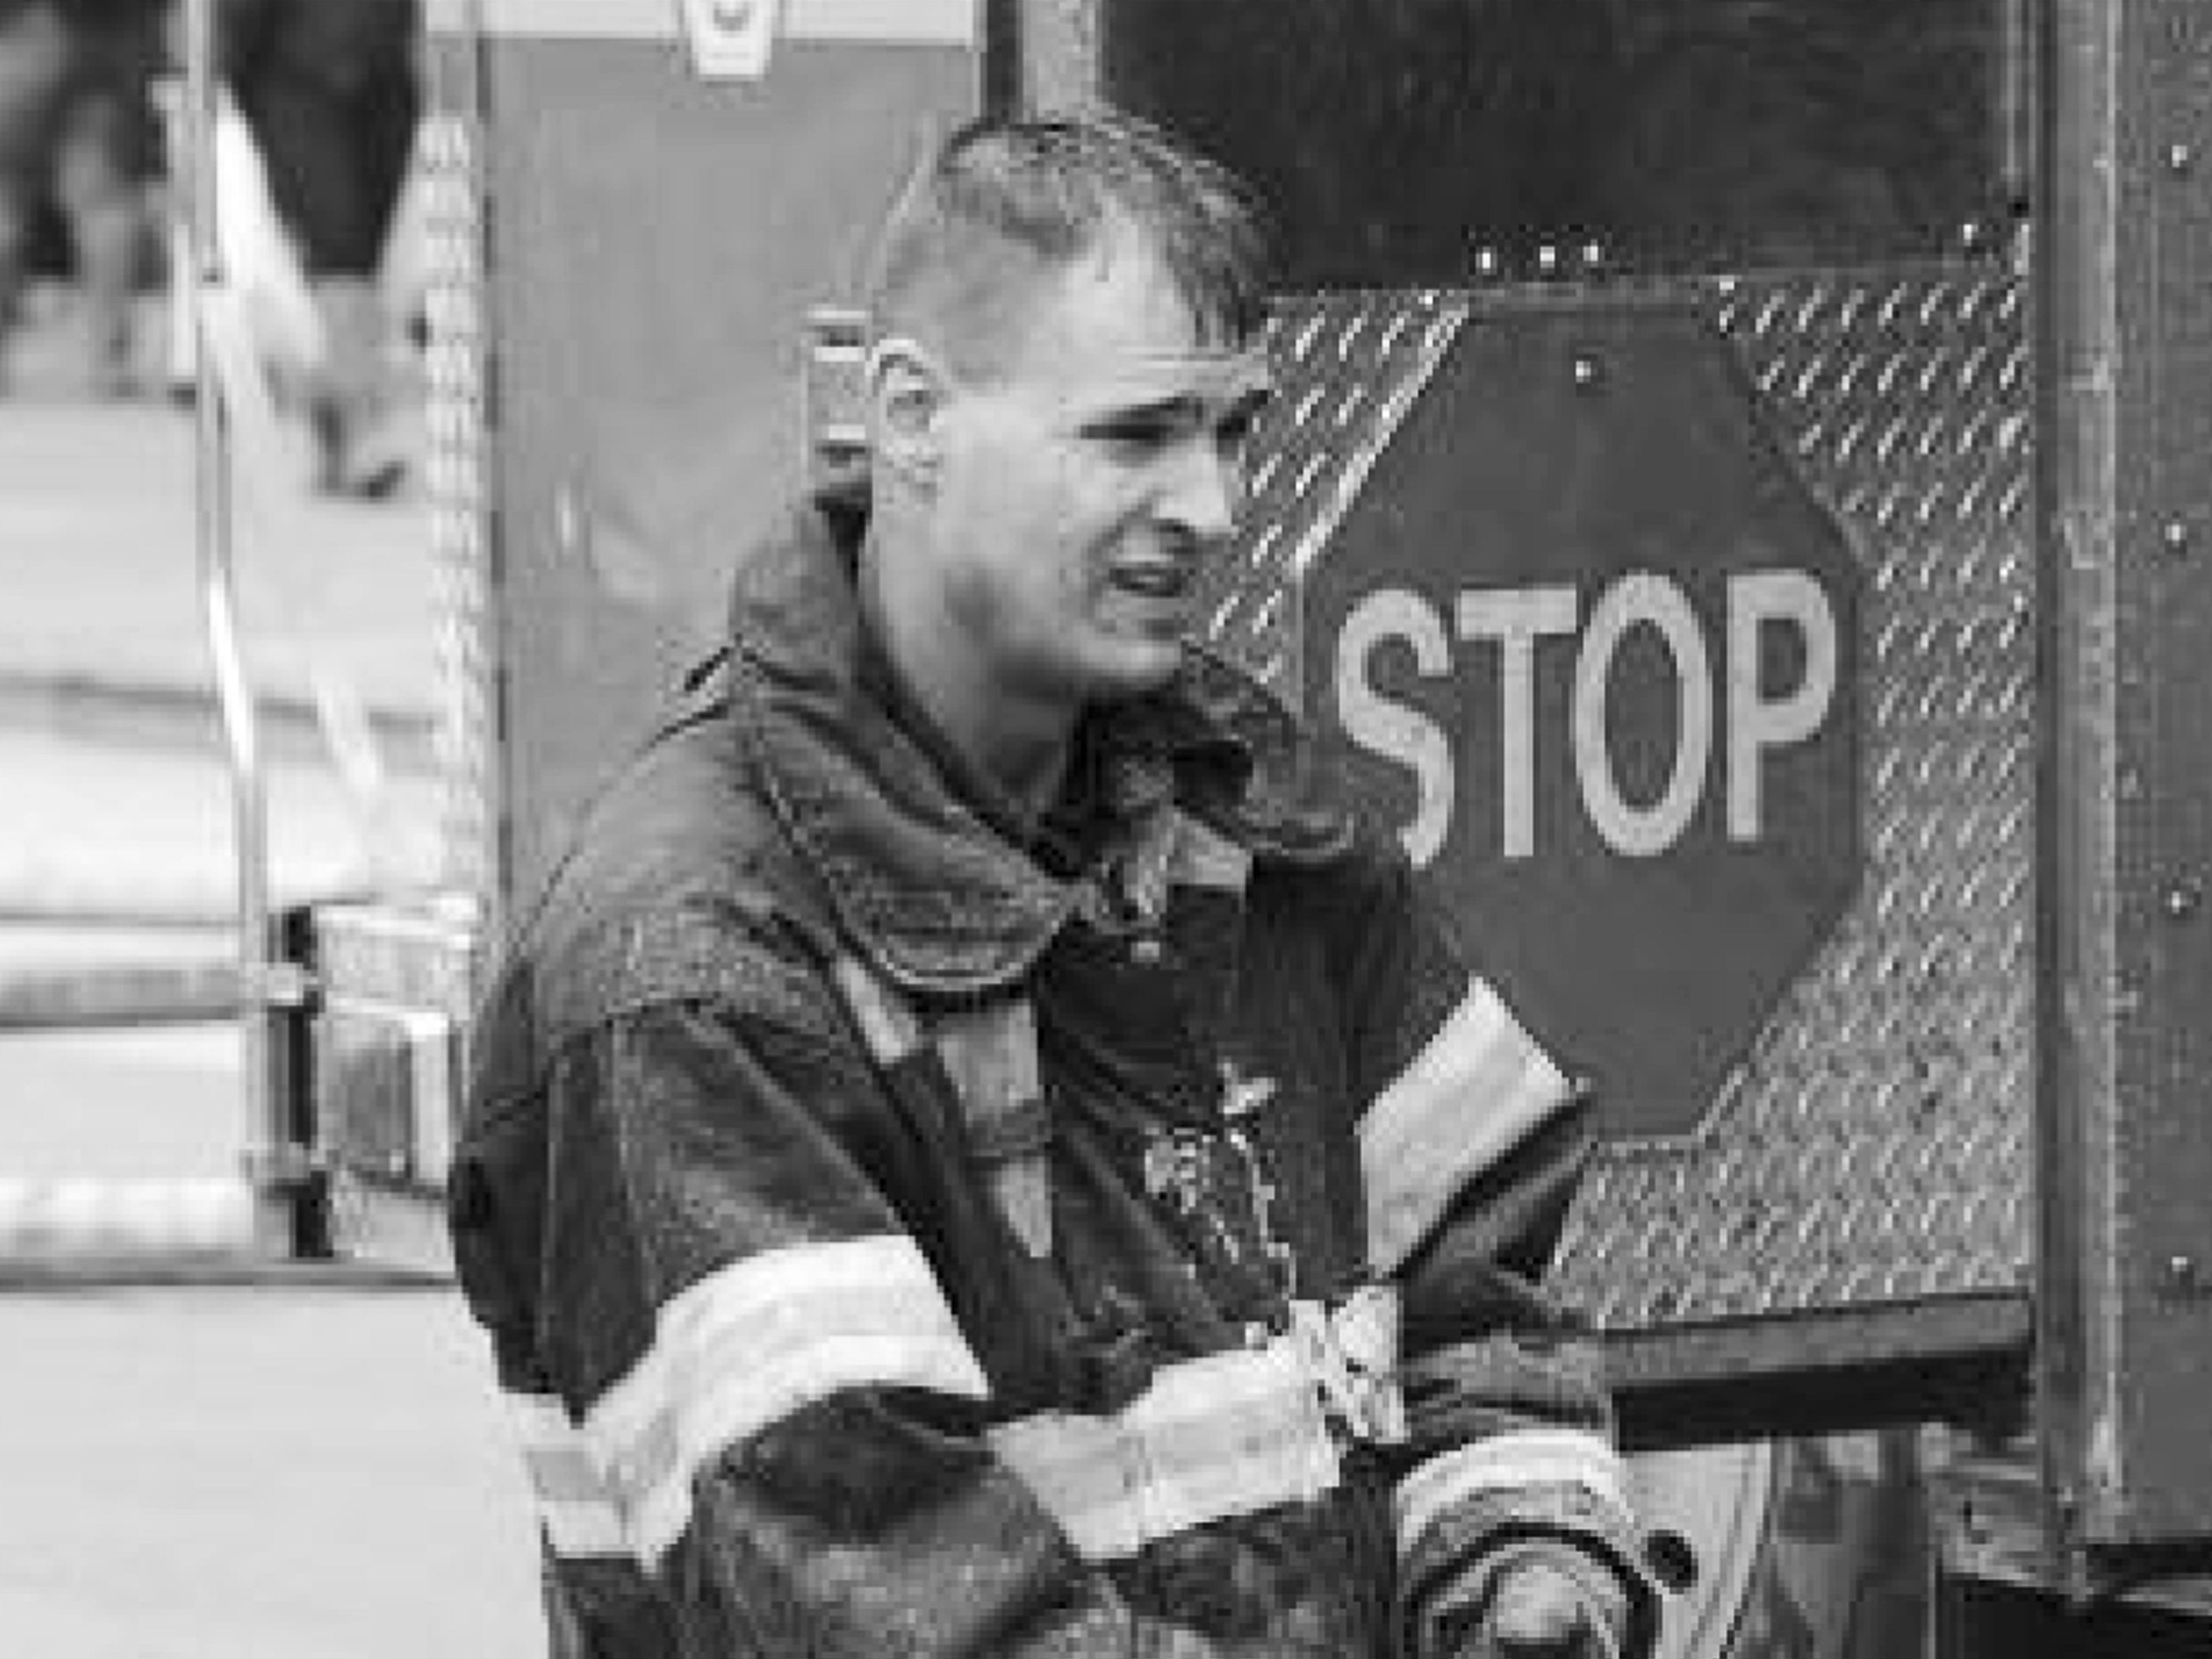 This undated photo, provided by the Fire Department of New York, Tuesday April 9, 2019, shows Fire Department of New York firefighter Christopher Slutman. Slutman, a 15-year member of the Fire Dept. of New York, was among three American service members killed by a roadside bomb in Afghanistan on Monday.